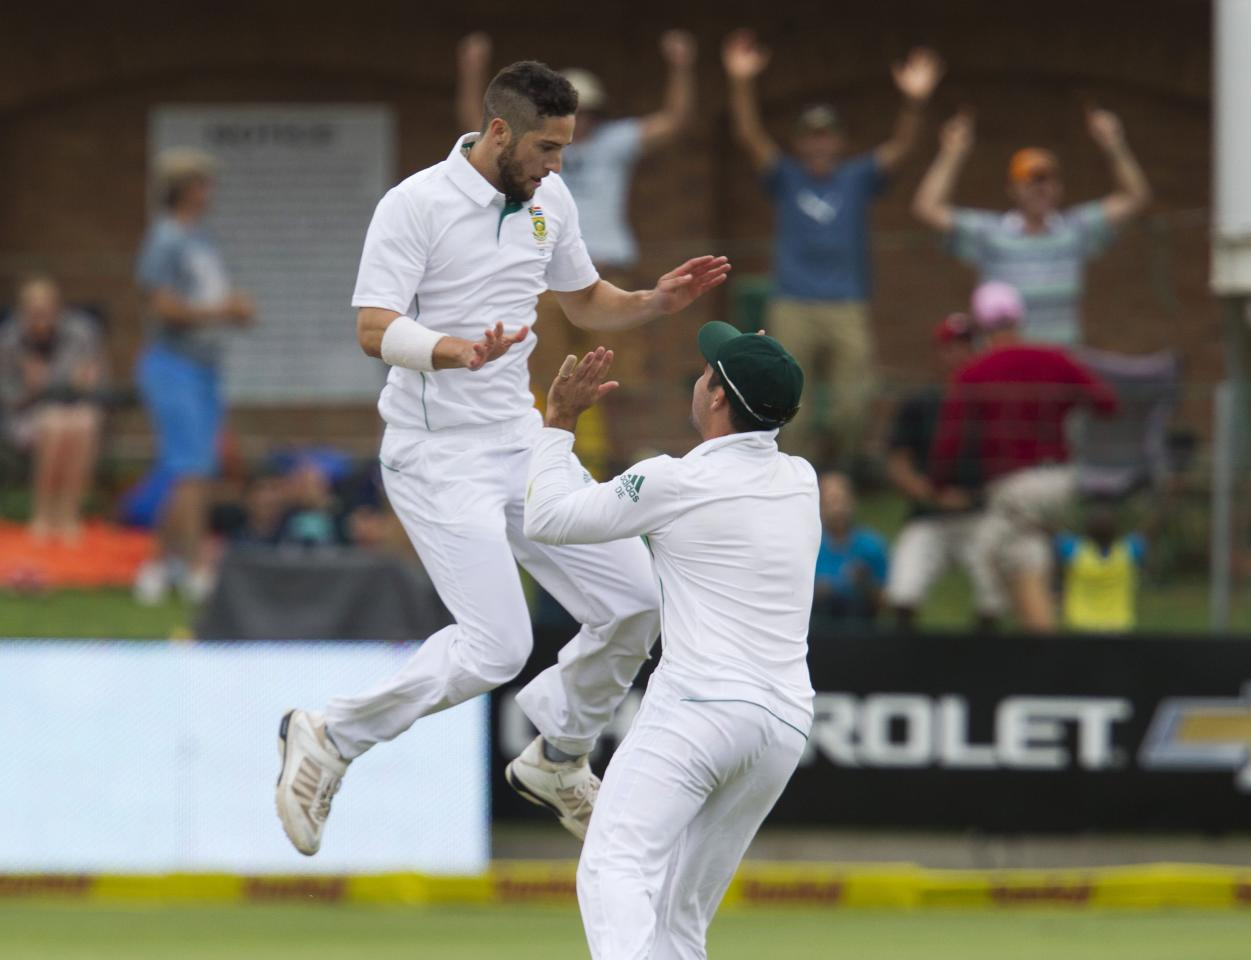 South Africa's Wayne Parnell (L) and Dean Elgar celebrate the wicket of Australia's Shaun Marsh (not in picture) during the second day of the second cricket test match in Port Elizabeth, February 21, 2014. REUTERS/Rogan Ward (SOUTH AFRICA - Tags: SPORT CRICKET)